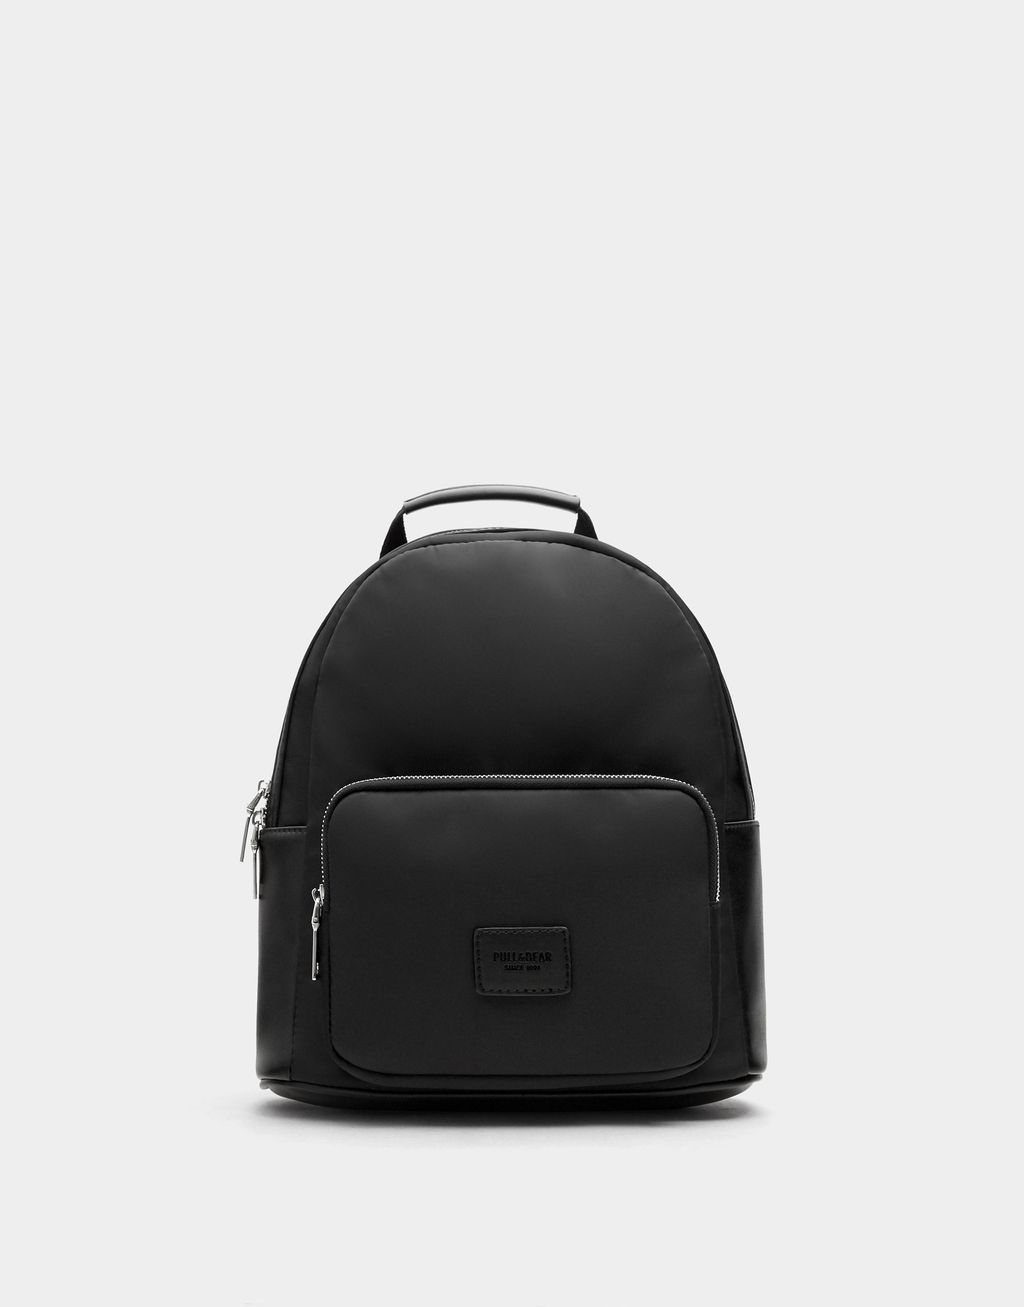 Coloured Urban Mini Backpack - Pull   Bear  9a4092a7b68aa